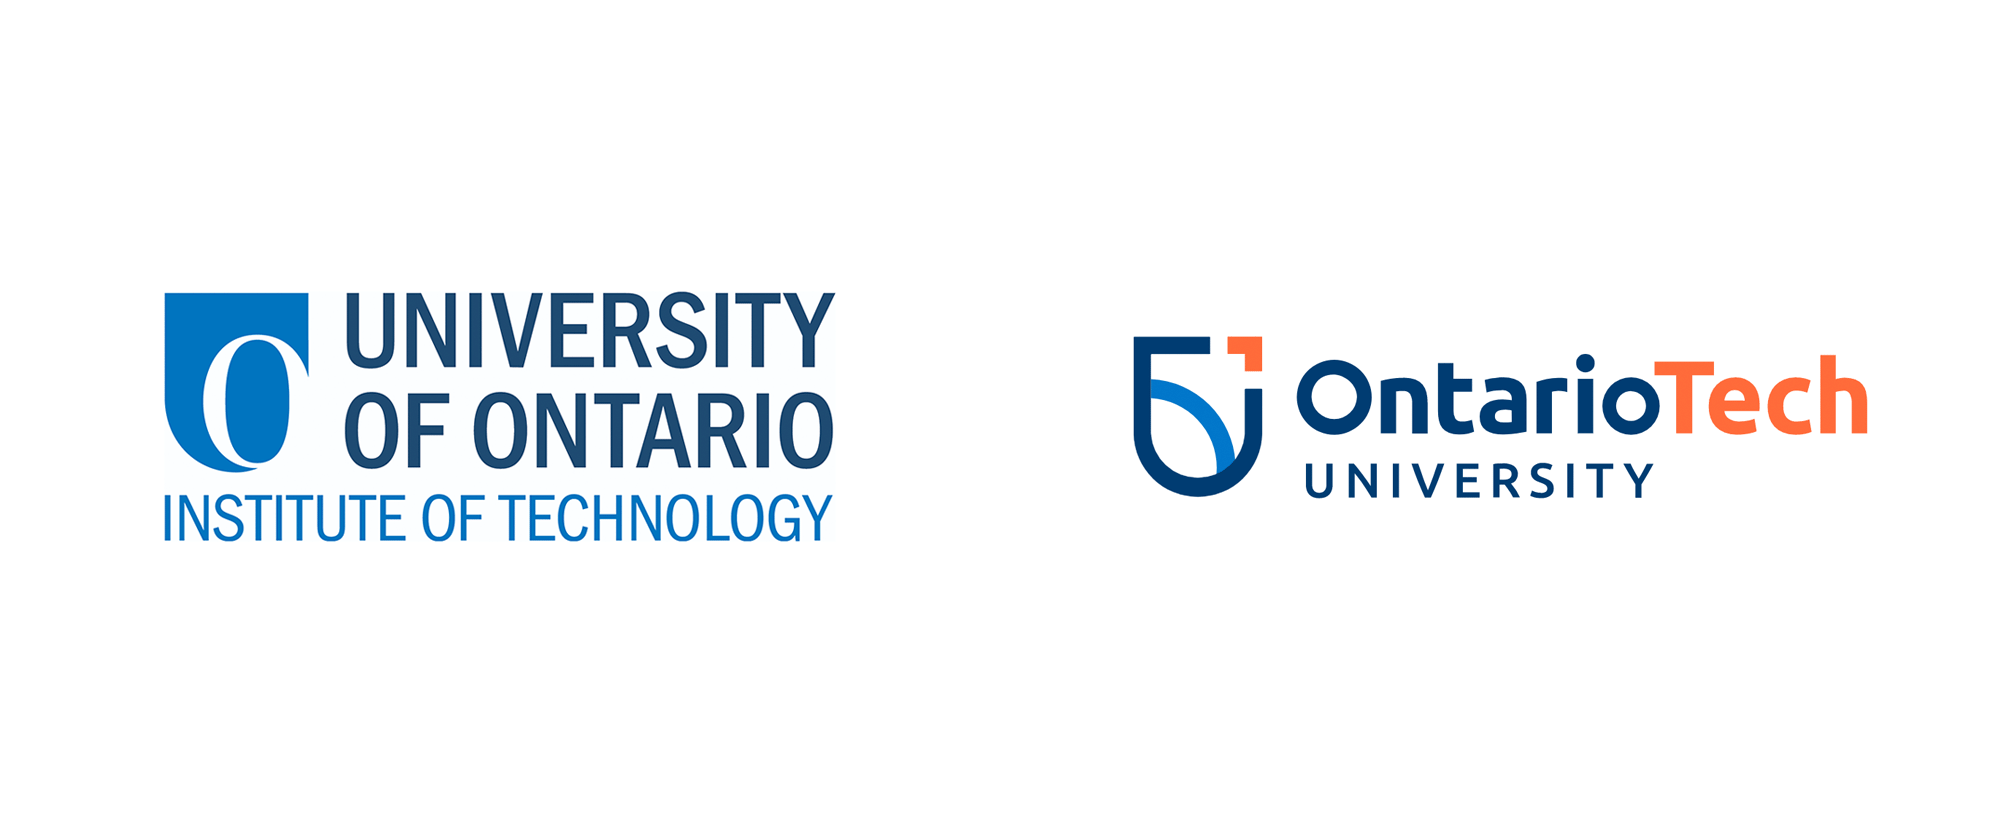 New Name and Logo for Ontario Tech University